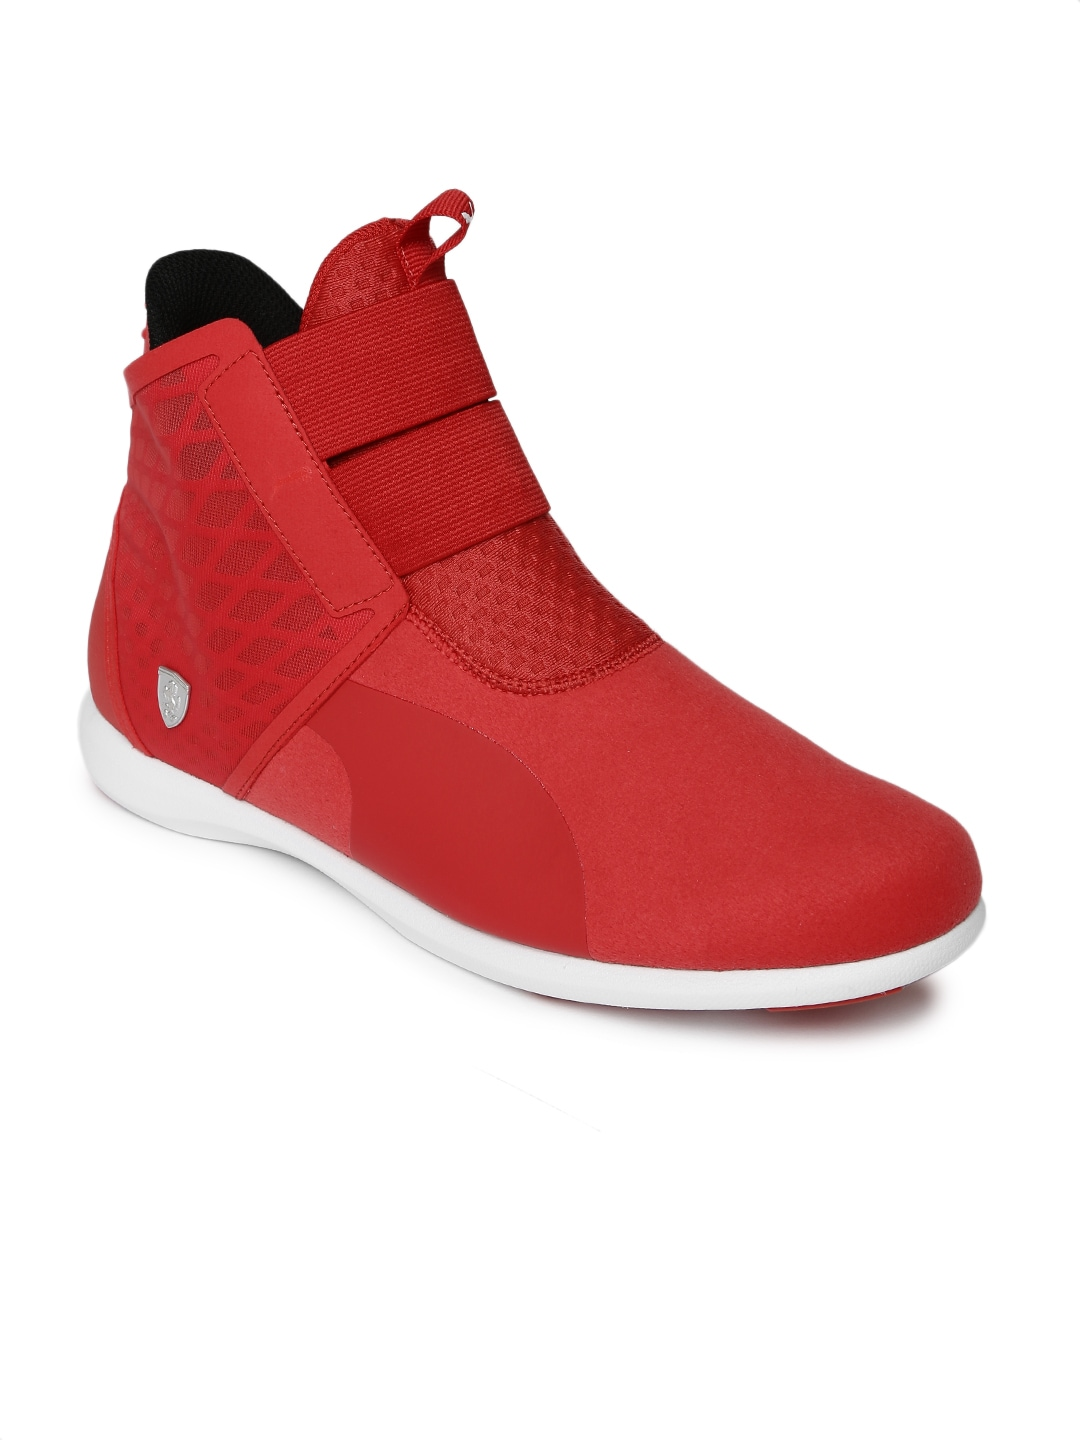 Puma High Ankle Shoes For Women